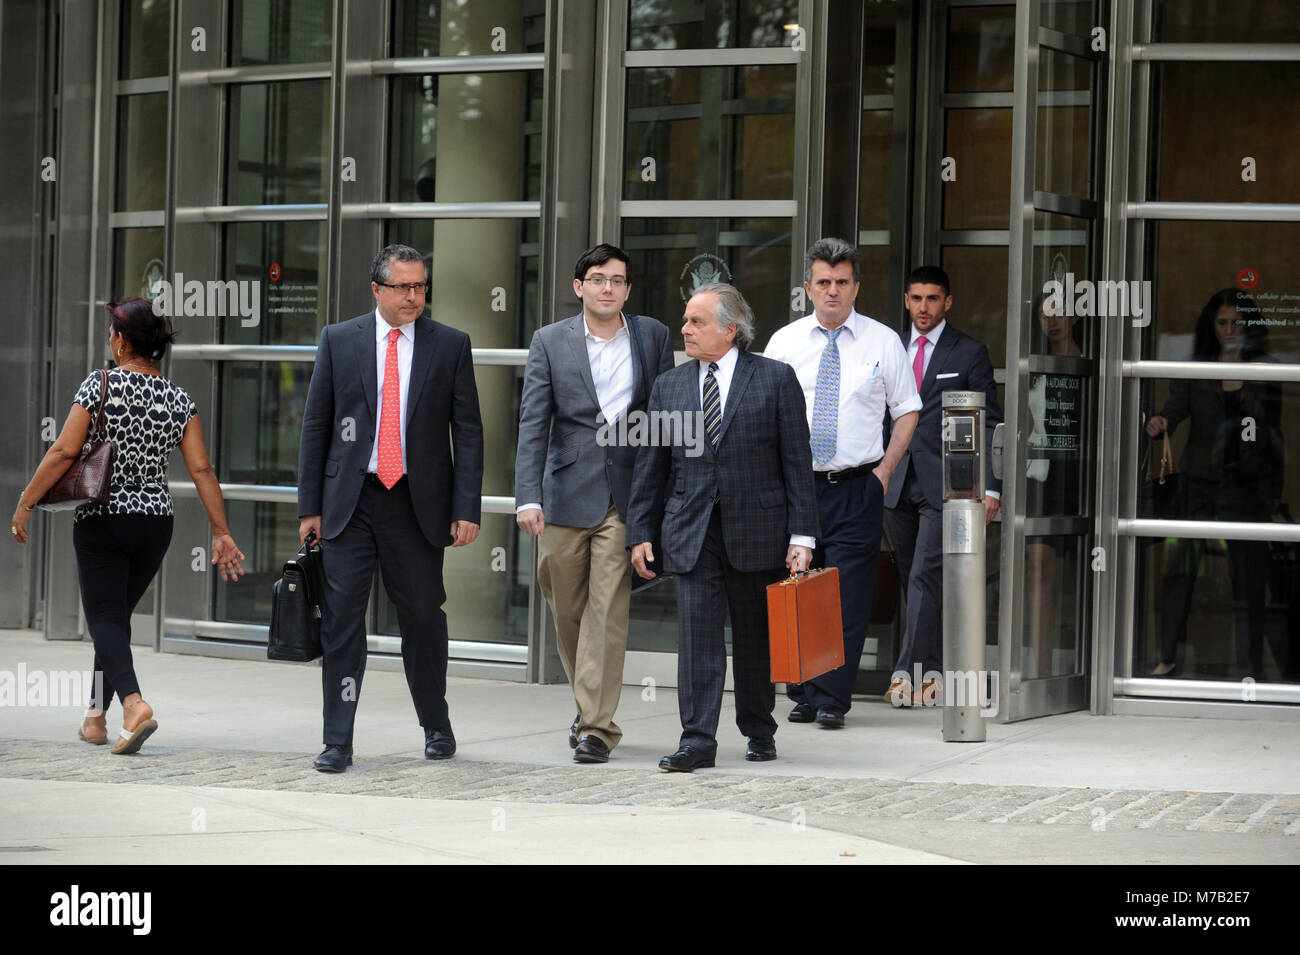 NEW YORK, NY - AUGUST 04: Martin Shkreli, former chief executive officer of Turing Pharmaceuticals AG, center, pauses - Stock Image